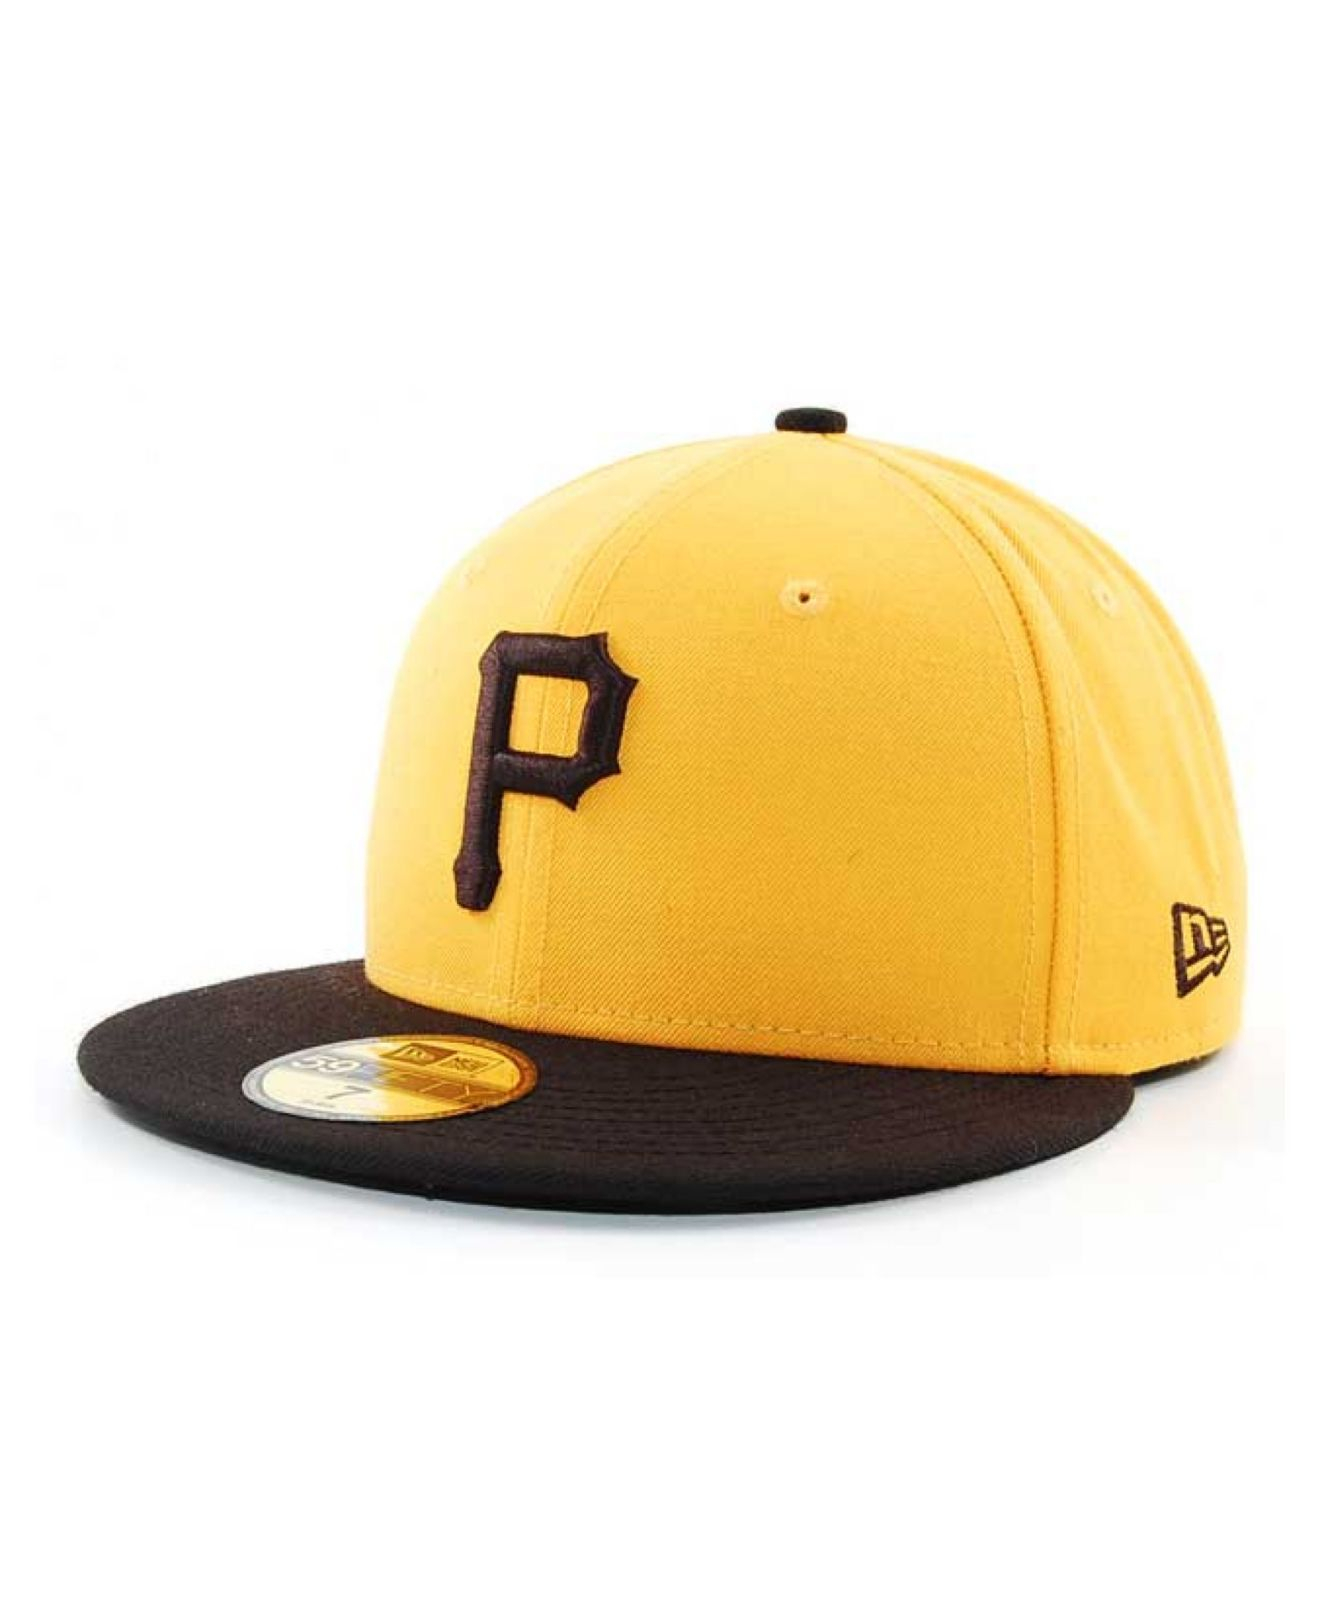 best service 77135 334c1 ... low cost lyst ktz pittsburgh pirates mlb cooperstown 59fifty cap in  black e64ab f9f20 ...